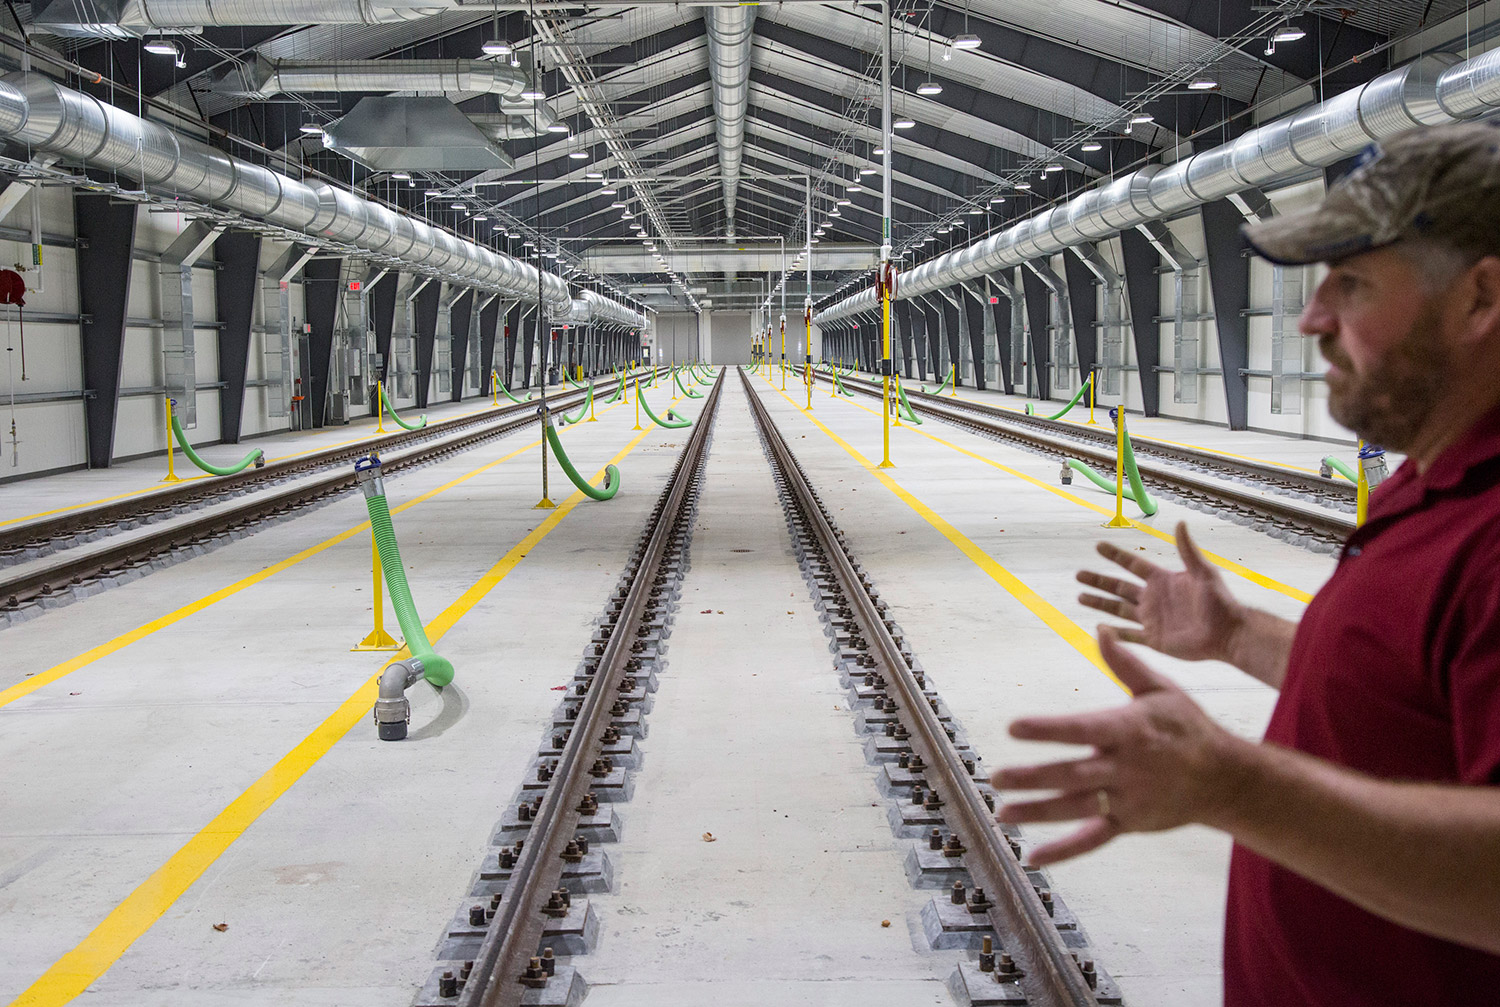 Jim Russell of the Northern New England Passenger Rail Authority gives a tour of the new train shed in Brunswick on Thursday. Longer than two football fields, it will become fully operational Nov. 21. Derek Davis/Staff Photographer